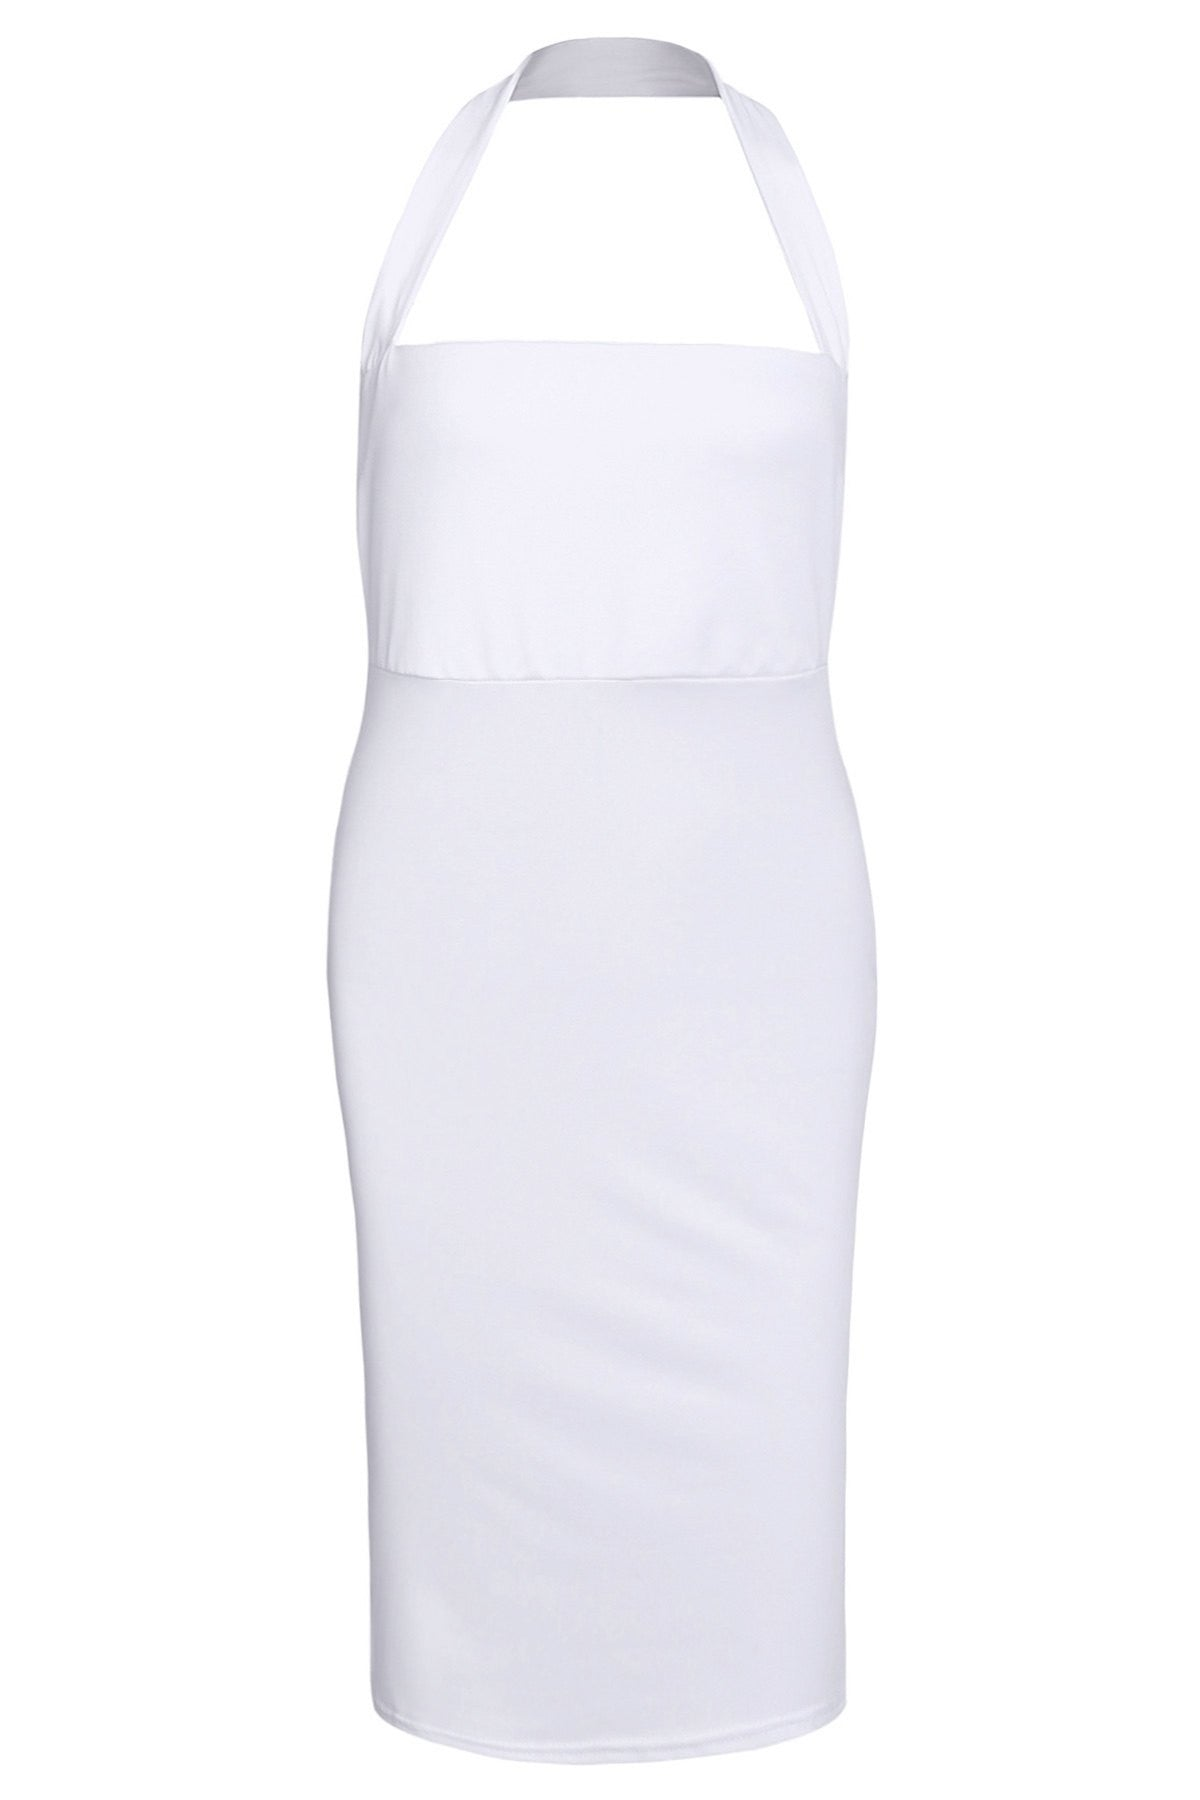 Elegant Halter Sleeveless Solid Color Bodycon Dress For Women LAVELIQ